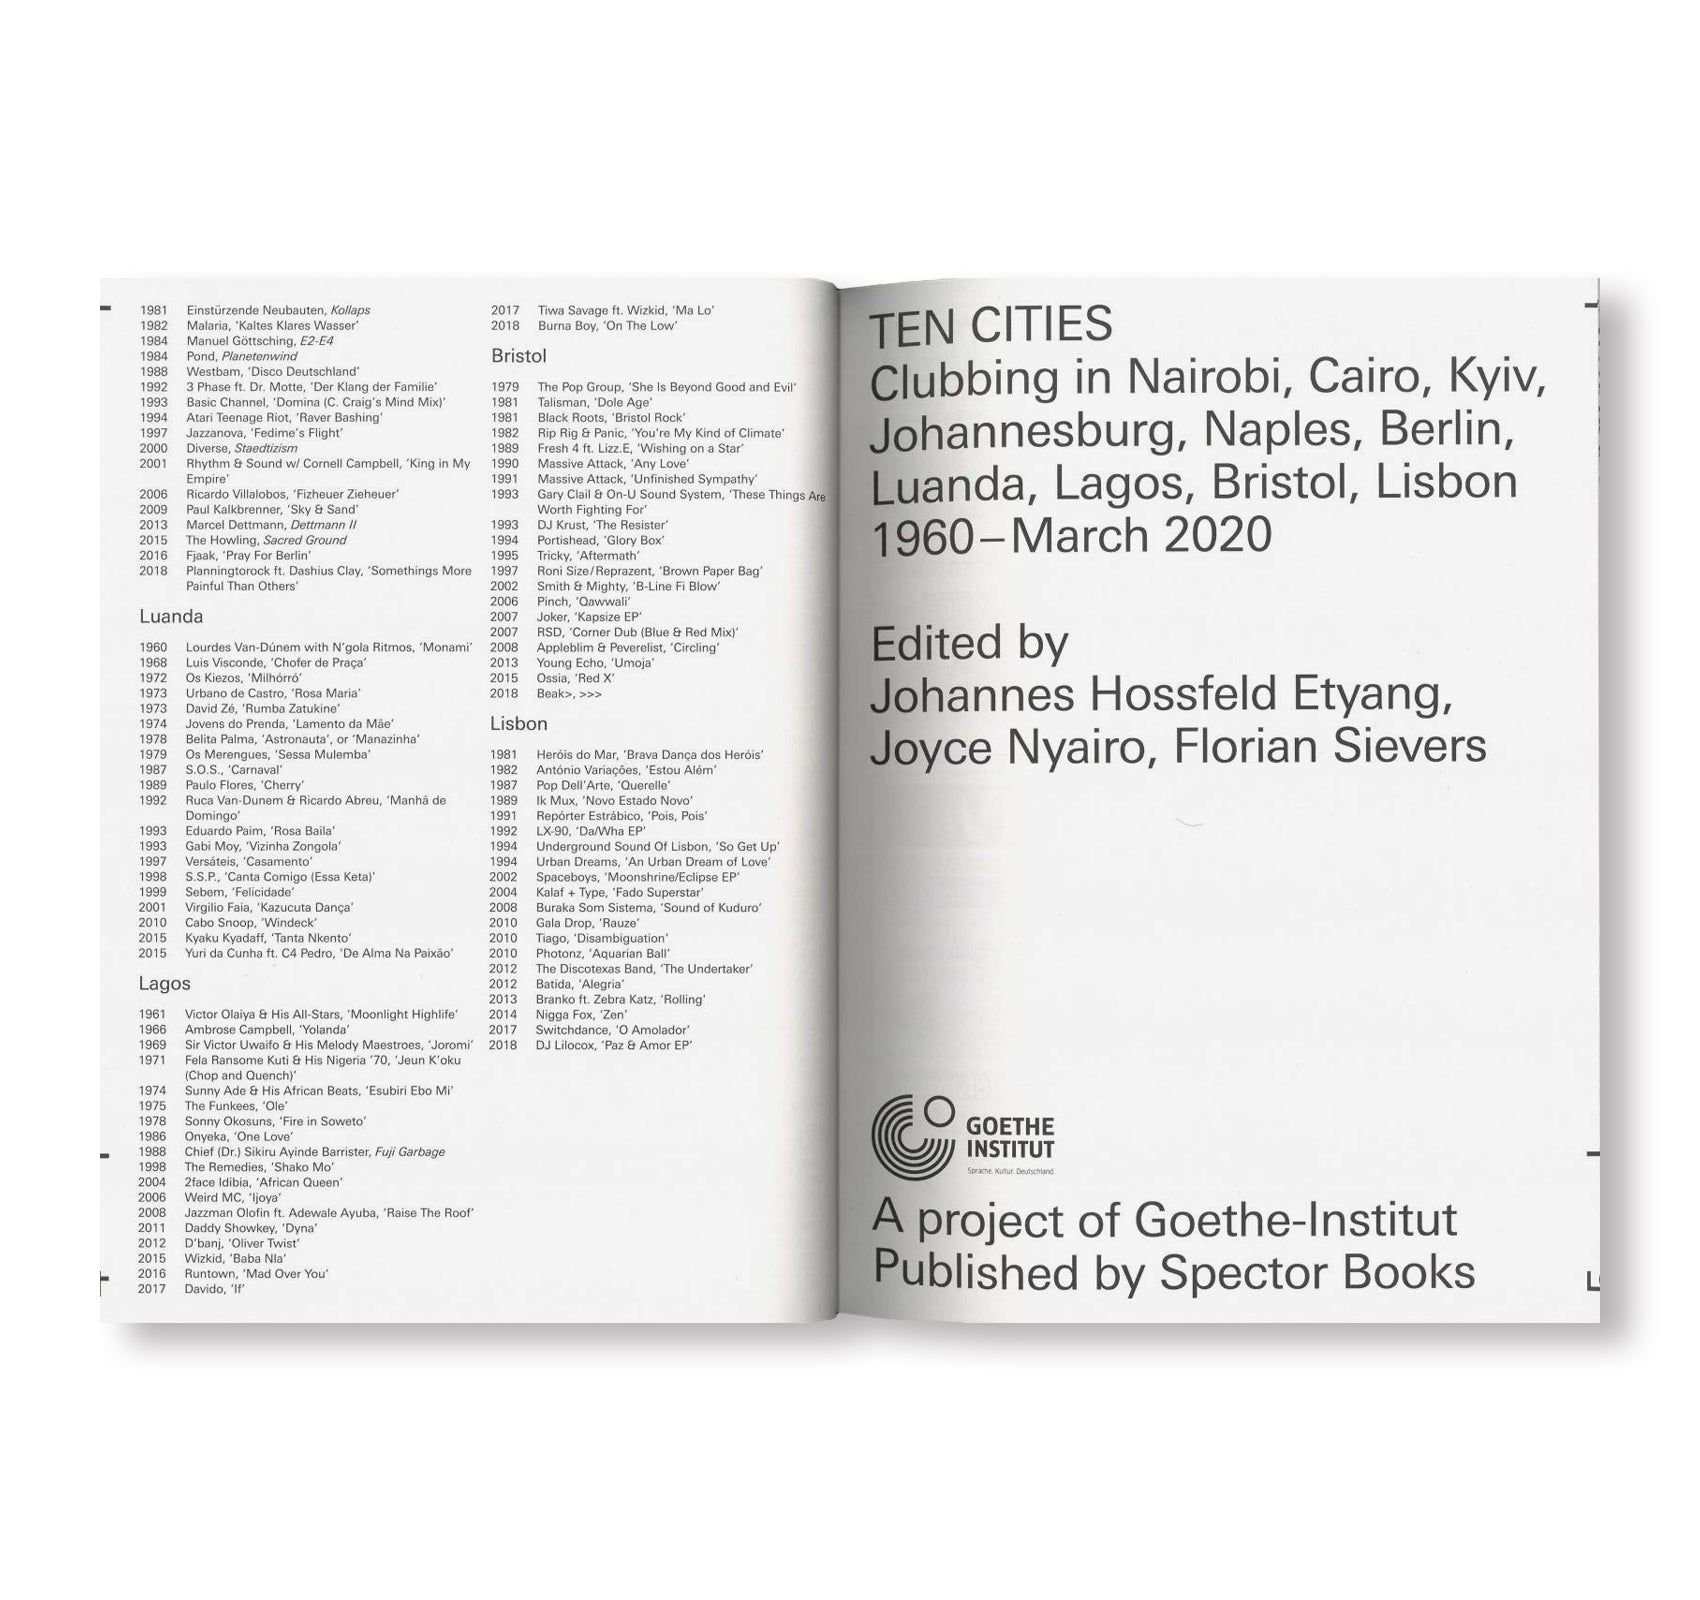 TEN CITIES by Clubbing in Nairobi, Cairo, Kyiv, Johannesburg, Berlin, Naples, Luanda, Lagos, Bristol, Lisbon 1960 – March 2020